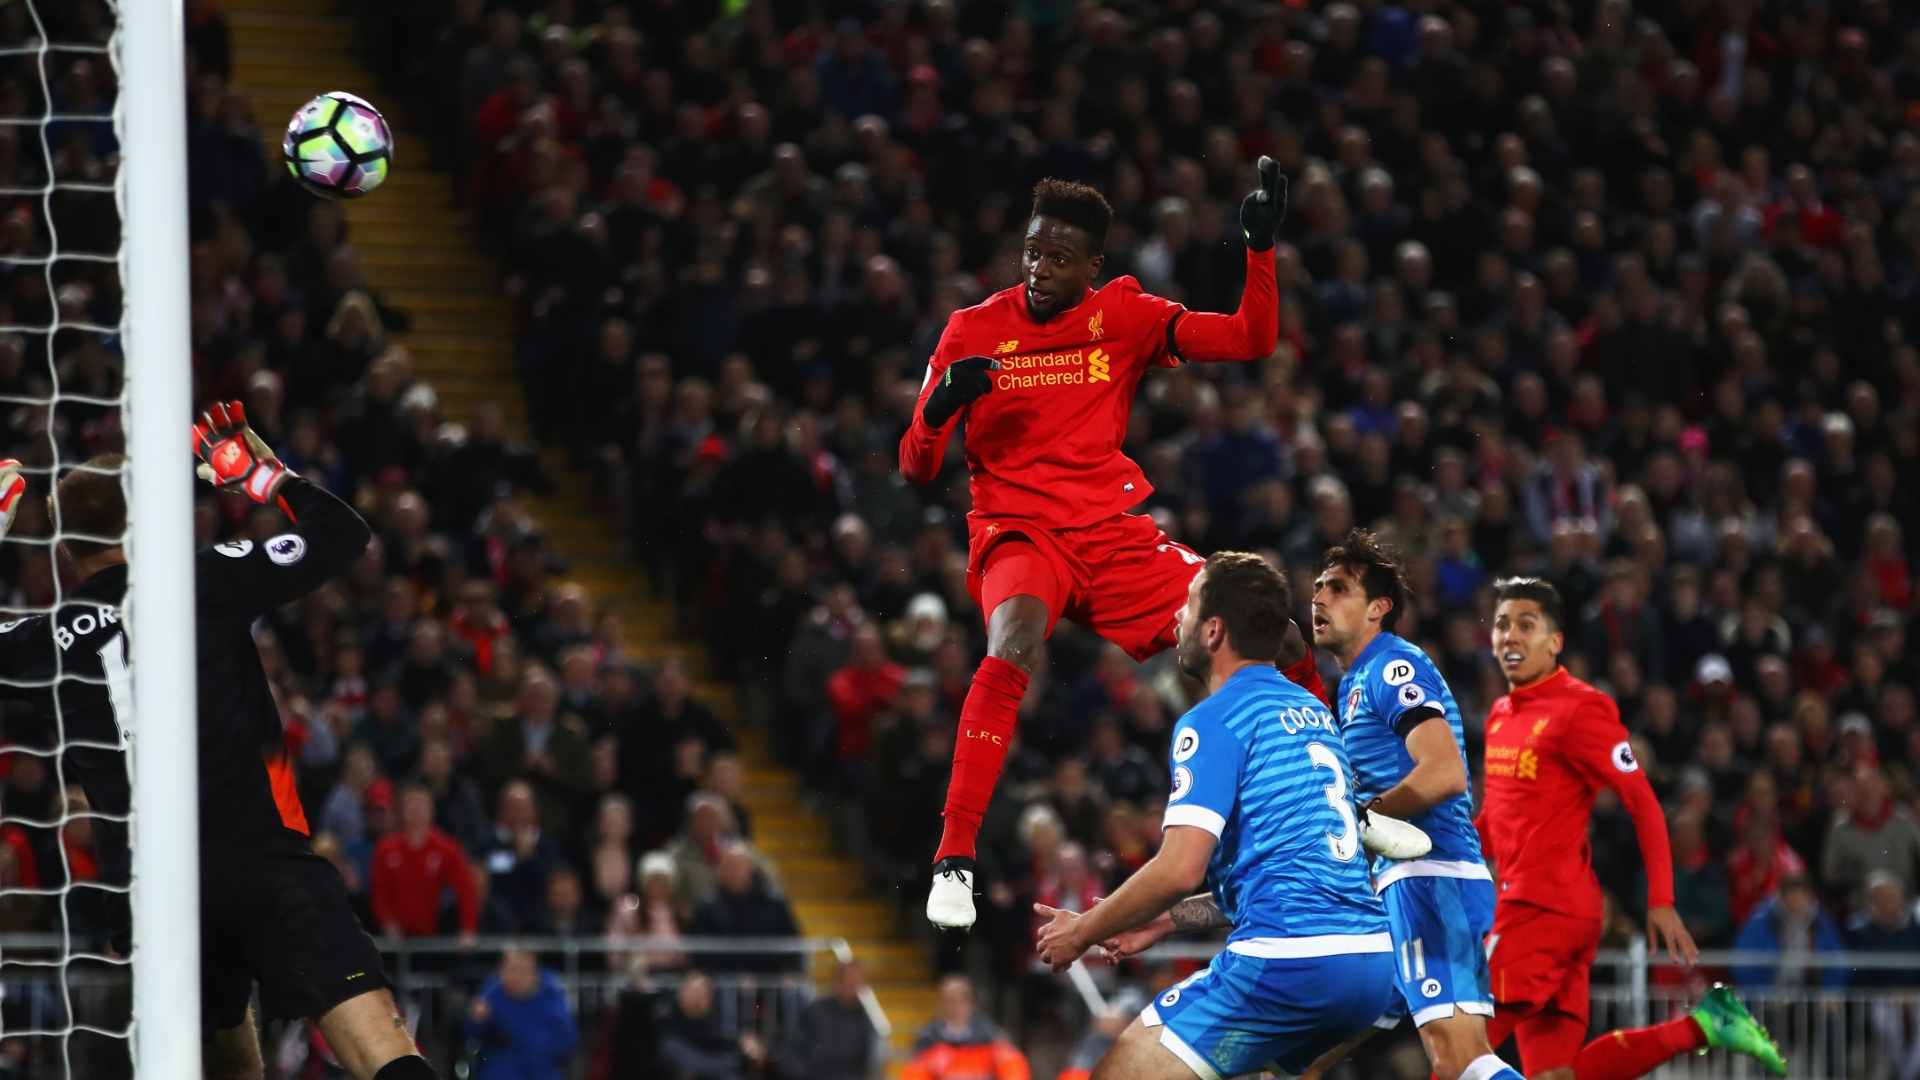 Divock Origi gave Liverpool the lead